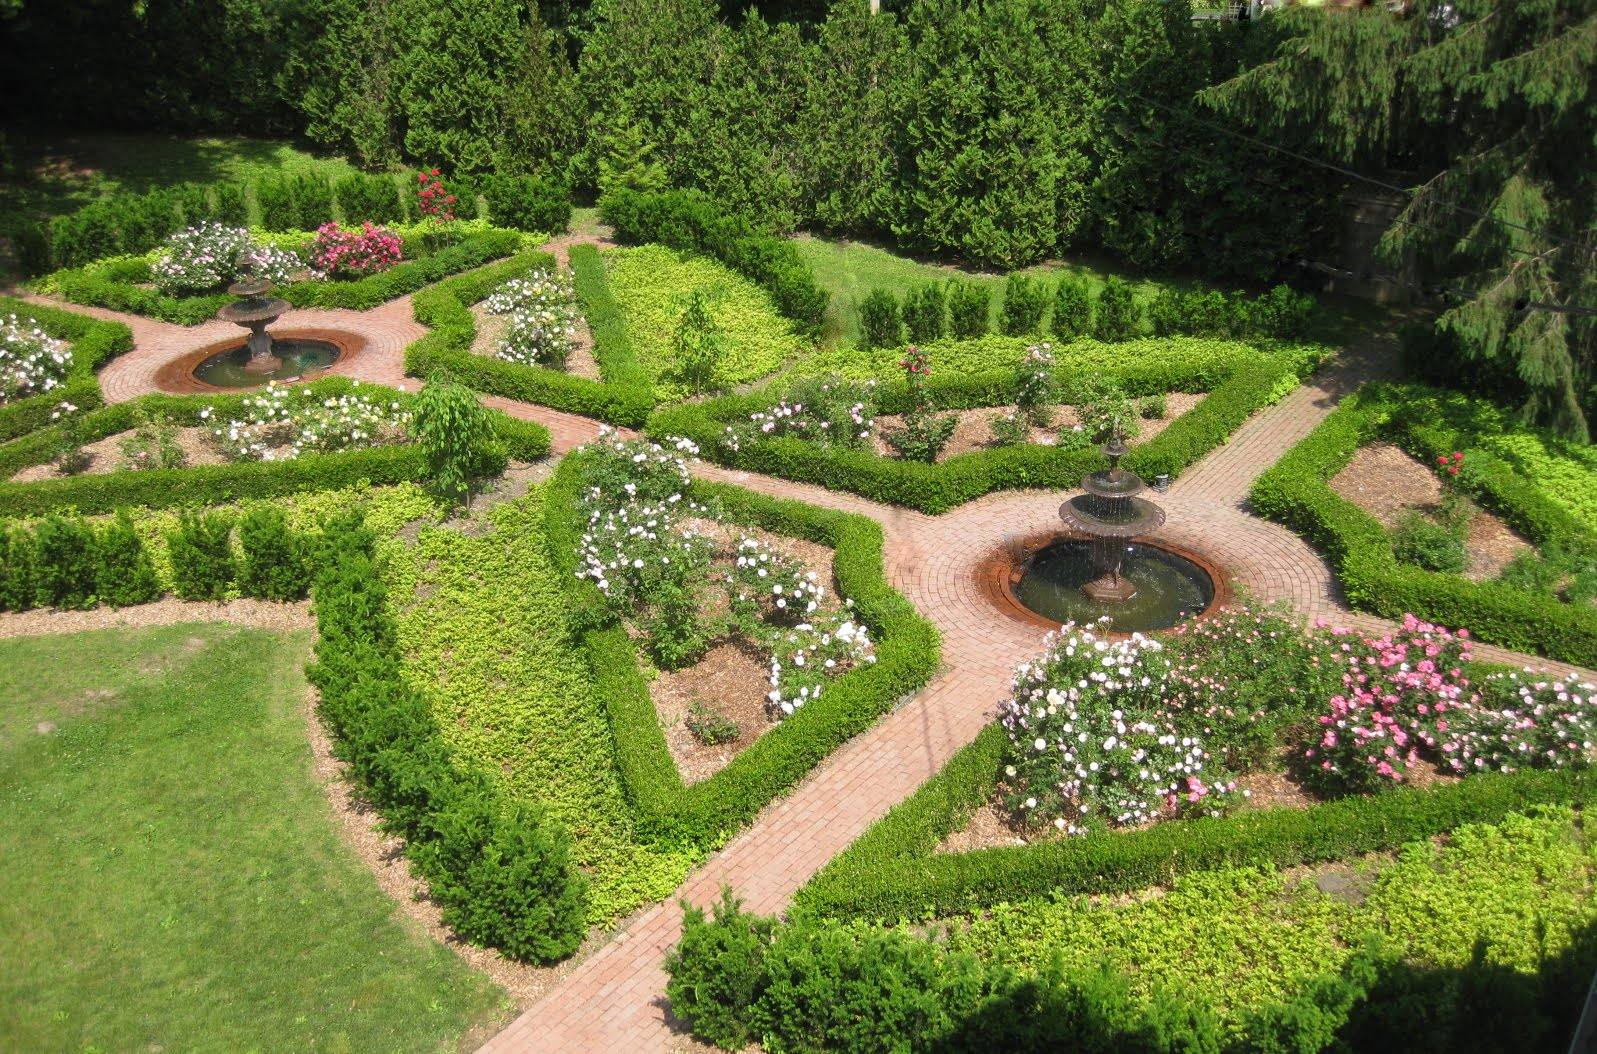 from parking lot to rose garden - Garden Design Birds Eye View